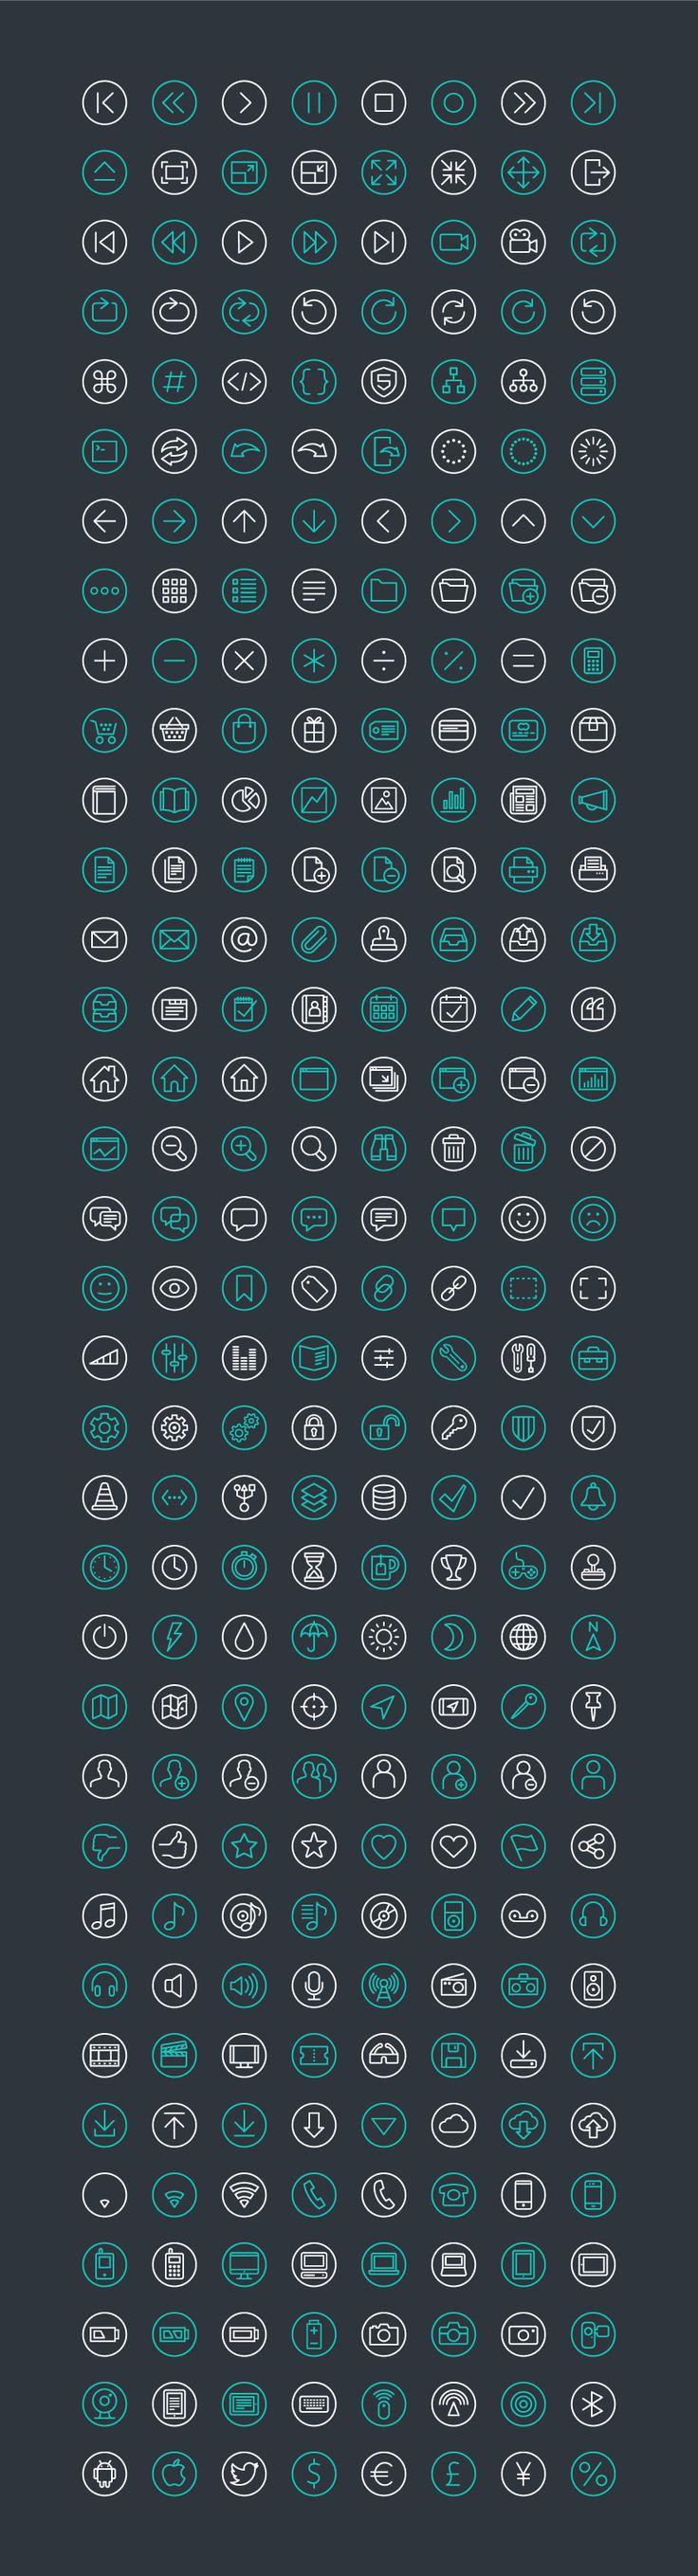 Fineline Icons by ikono.me (via Creattica)